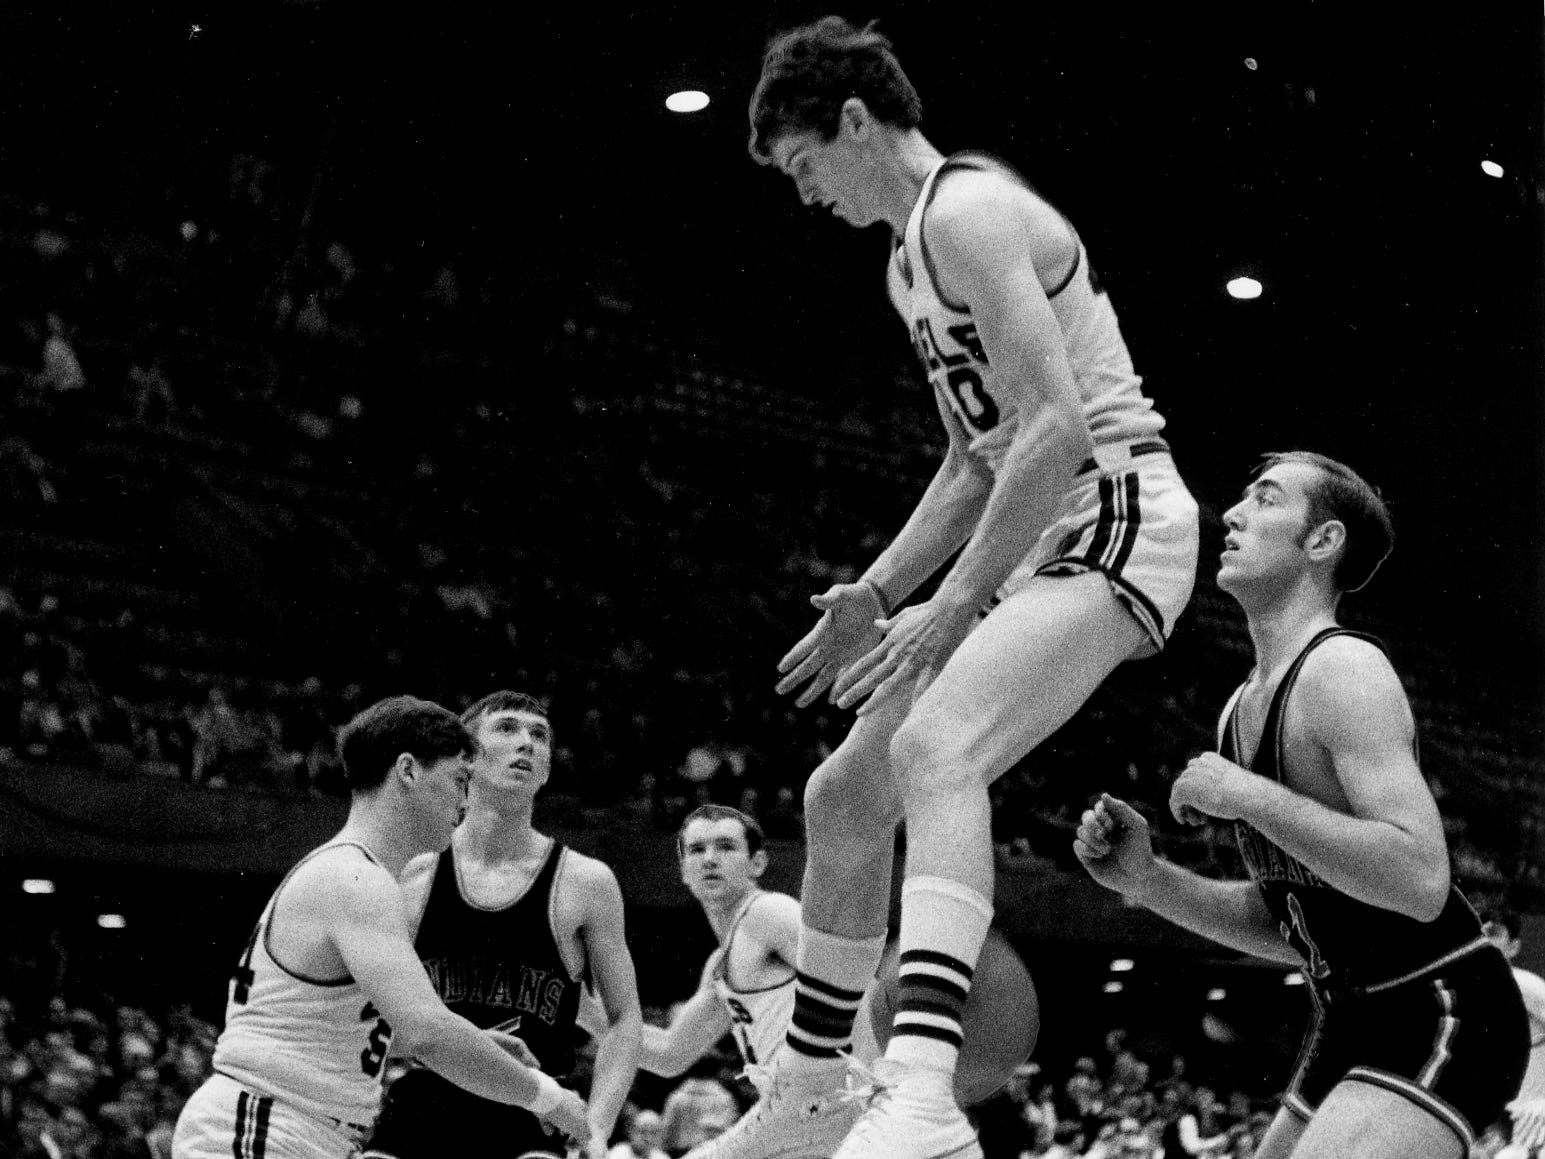 The year is 1969. Tim Deiters, Walsh of Ottumwa's flashy center, stays one jump ahead of the opposition in a semifinal round victory over Cedar Valley of Somers. Deiter scored 32 points.